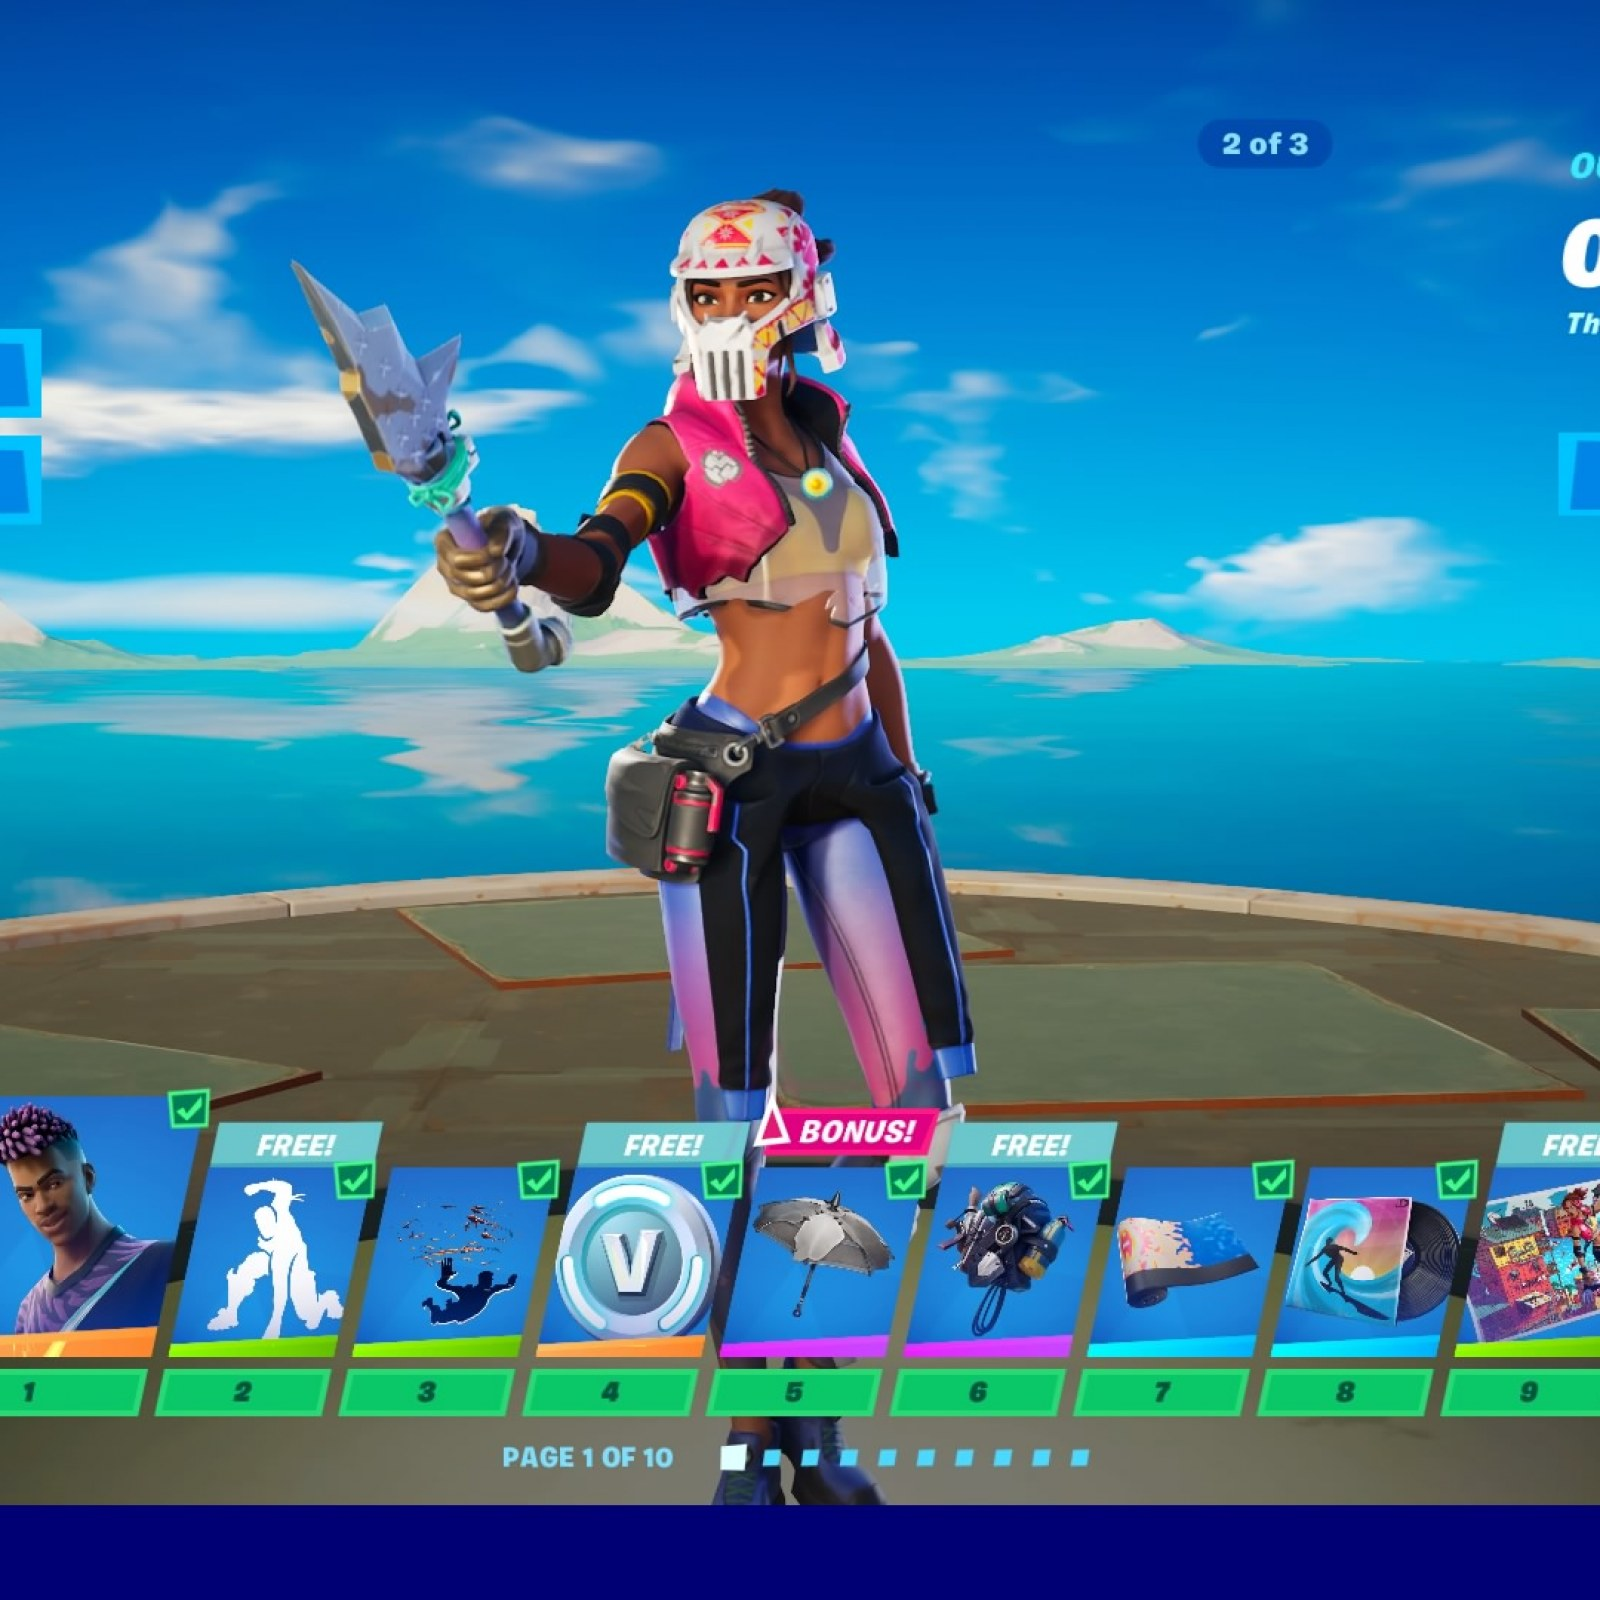 Fortnite Kit – A free multiplayer game where you compete in battle royale, collaborate to create your private.